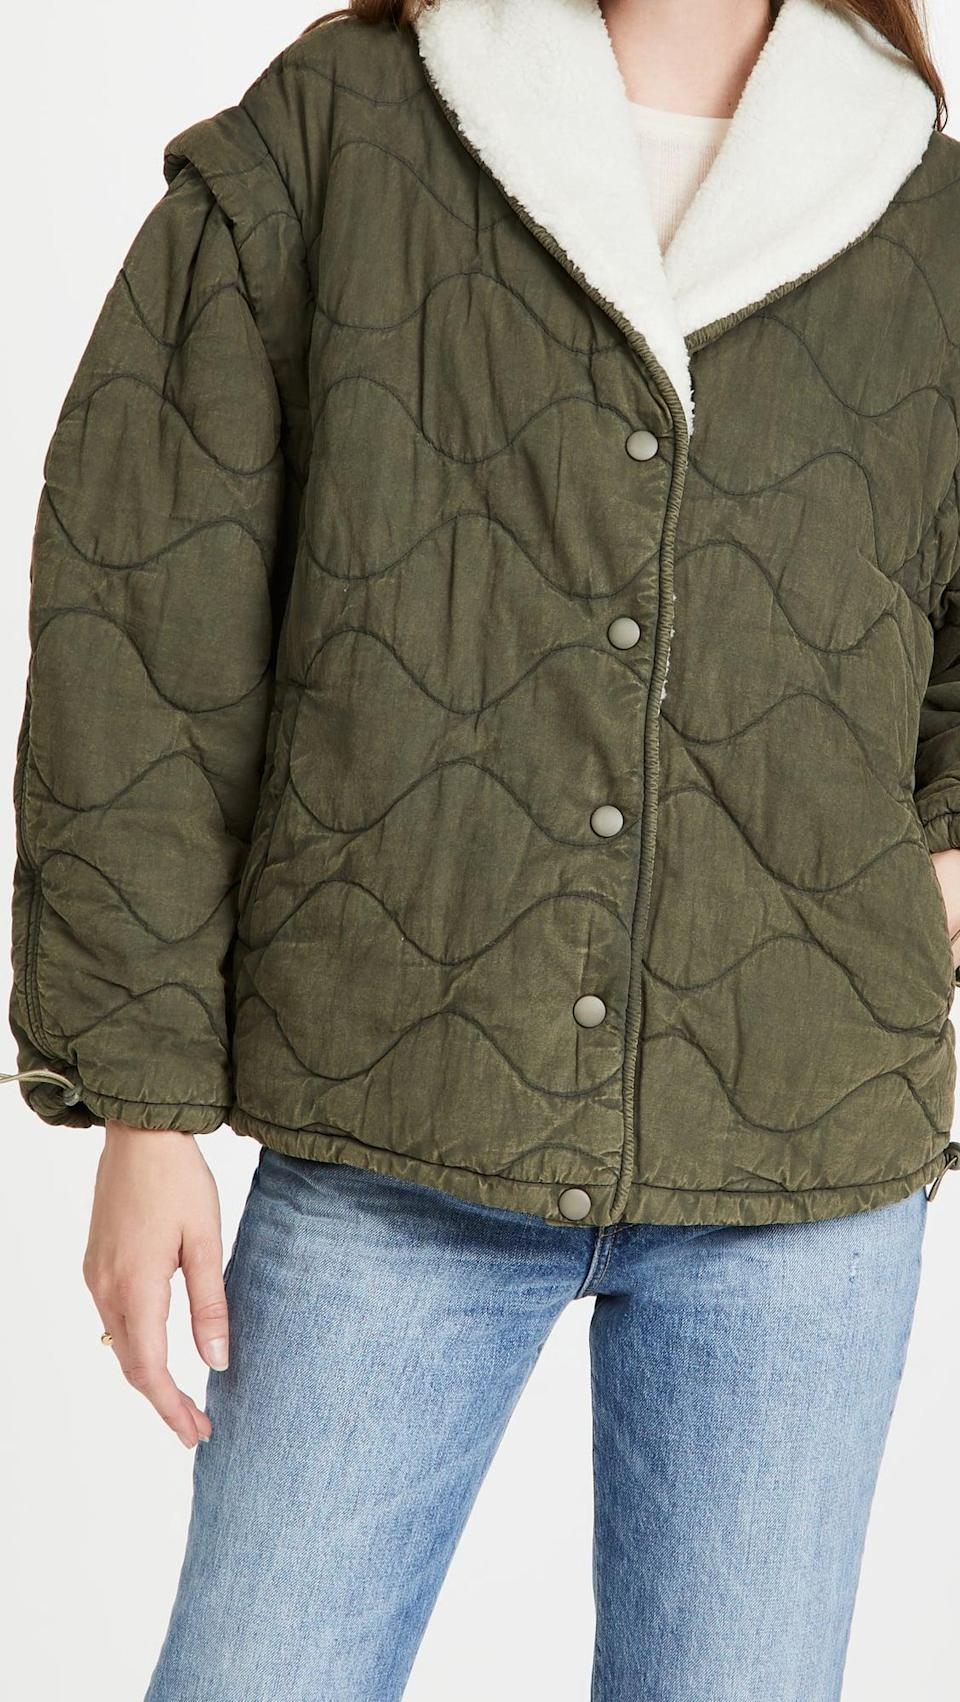 """<p>""""Rather than stretching my budget across multiple new coats this fall and winter, I'm limiting myself to buying only one, and this <span>Sea Layla Quilted Puffer Jacket</span> ($495) is it. I love that it taps into the army-green quilted-jacket trend, but the sherpa lining sets it apart. I also like how versatile it is and can already envision it worn over everything from sweat sets to jeans to dresses and boots."""" - SN</p>"""